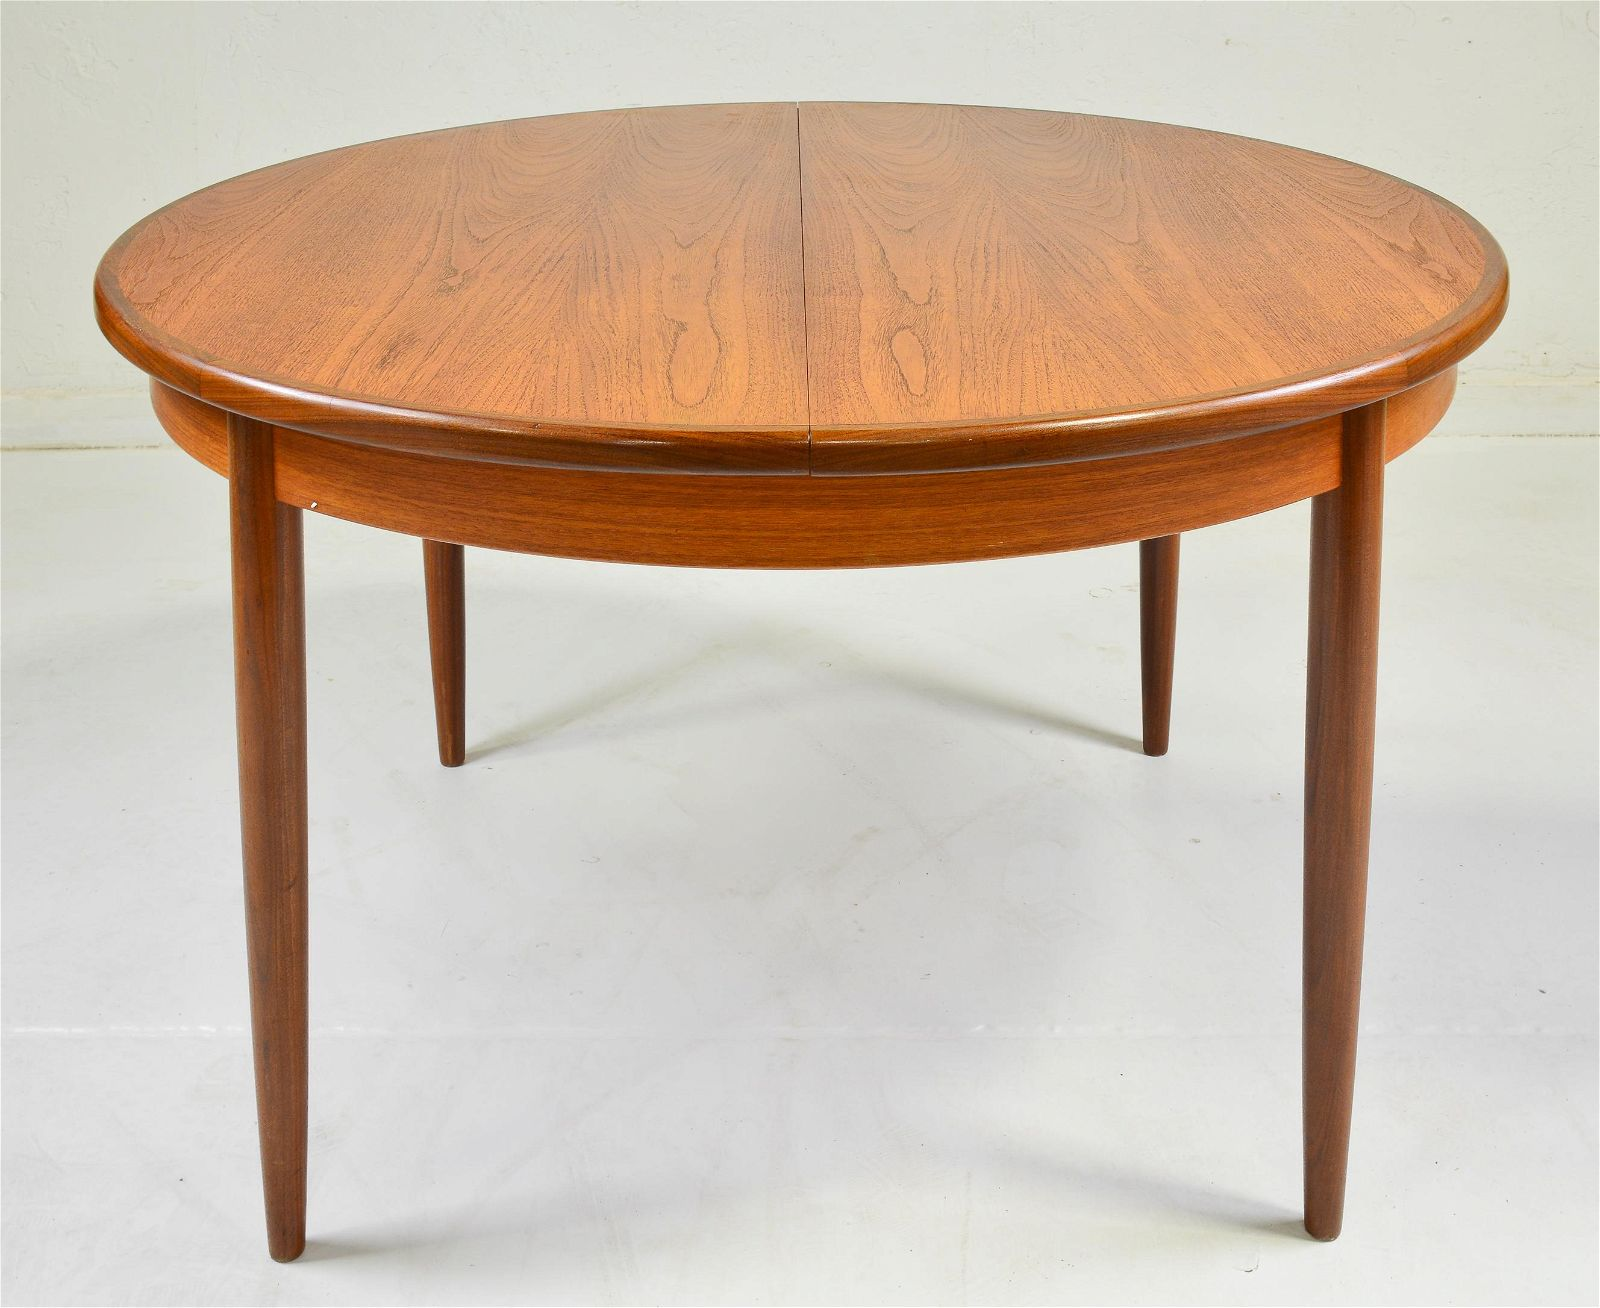 Round Mid Century Dining Table By G-Plan - Pop Up Leaf